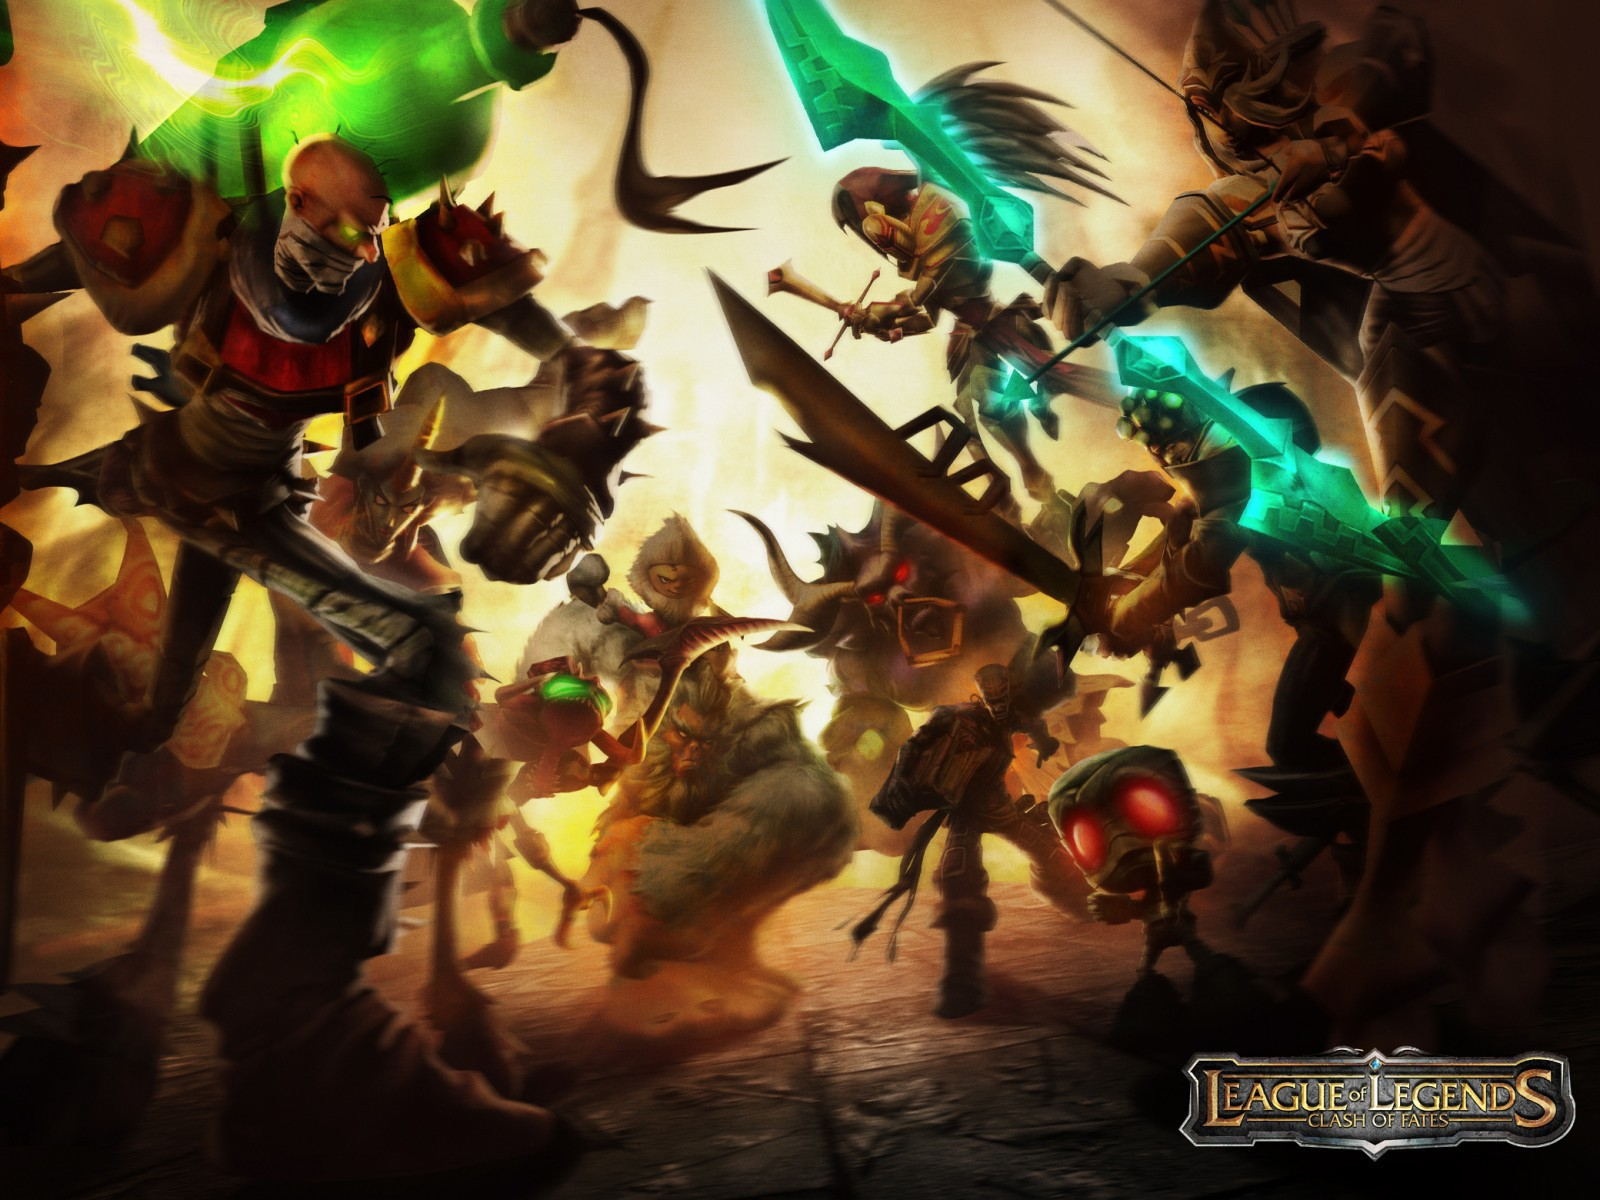 http://4.bp.blogspot.com/-DbgmUJnMe7U/UEcoHqj3blI/AAAAAAAAAN4/_O17R-_BW_8/s1600/league-of-legends.jpg